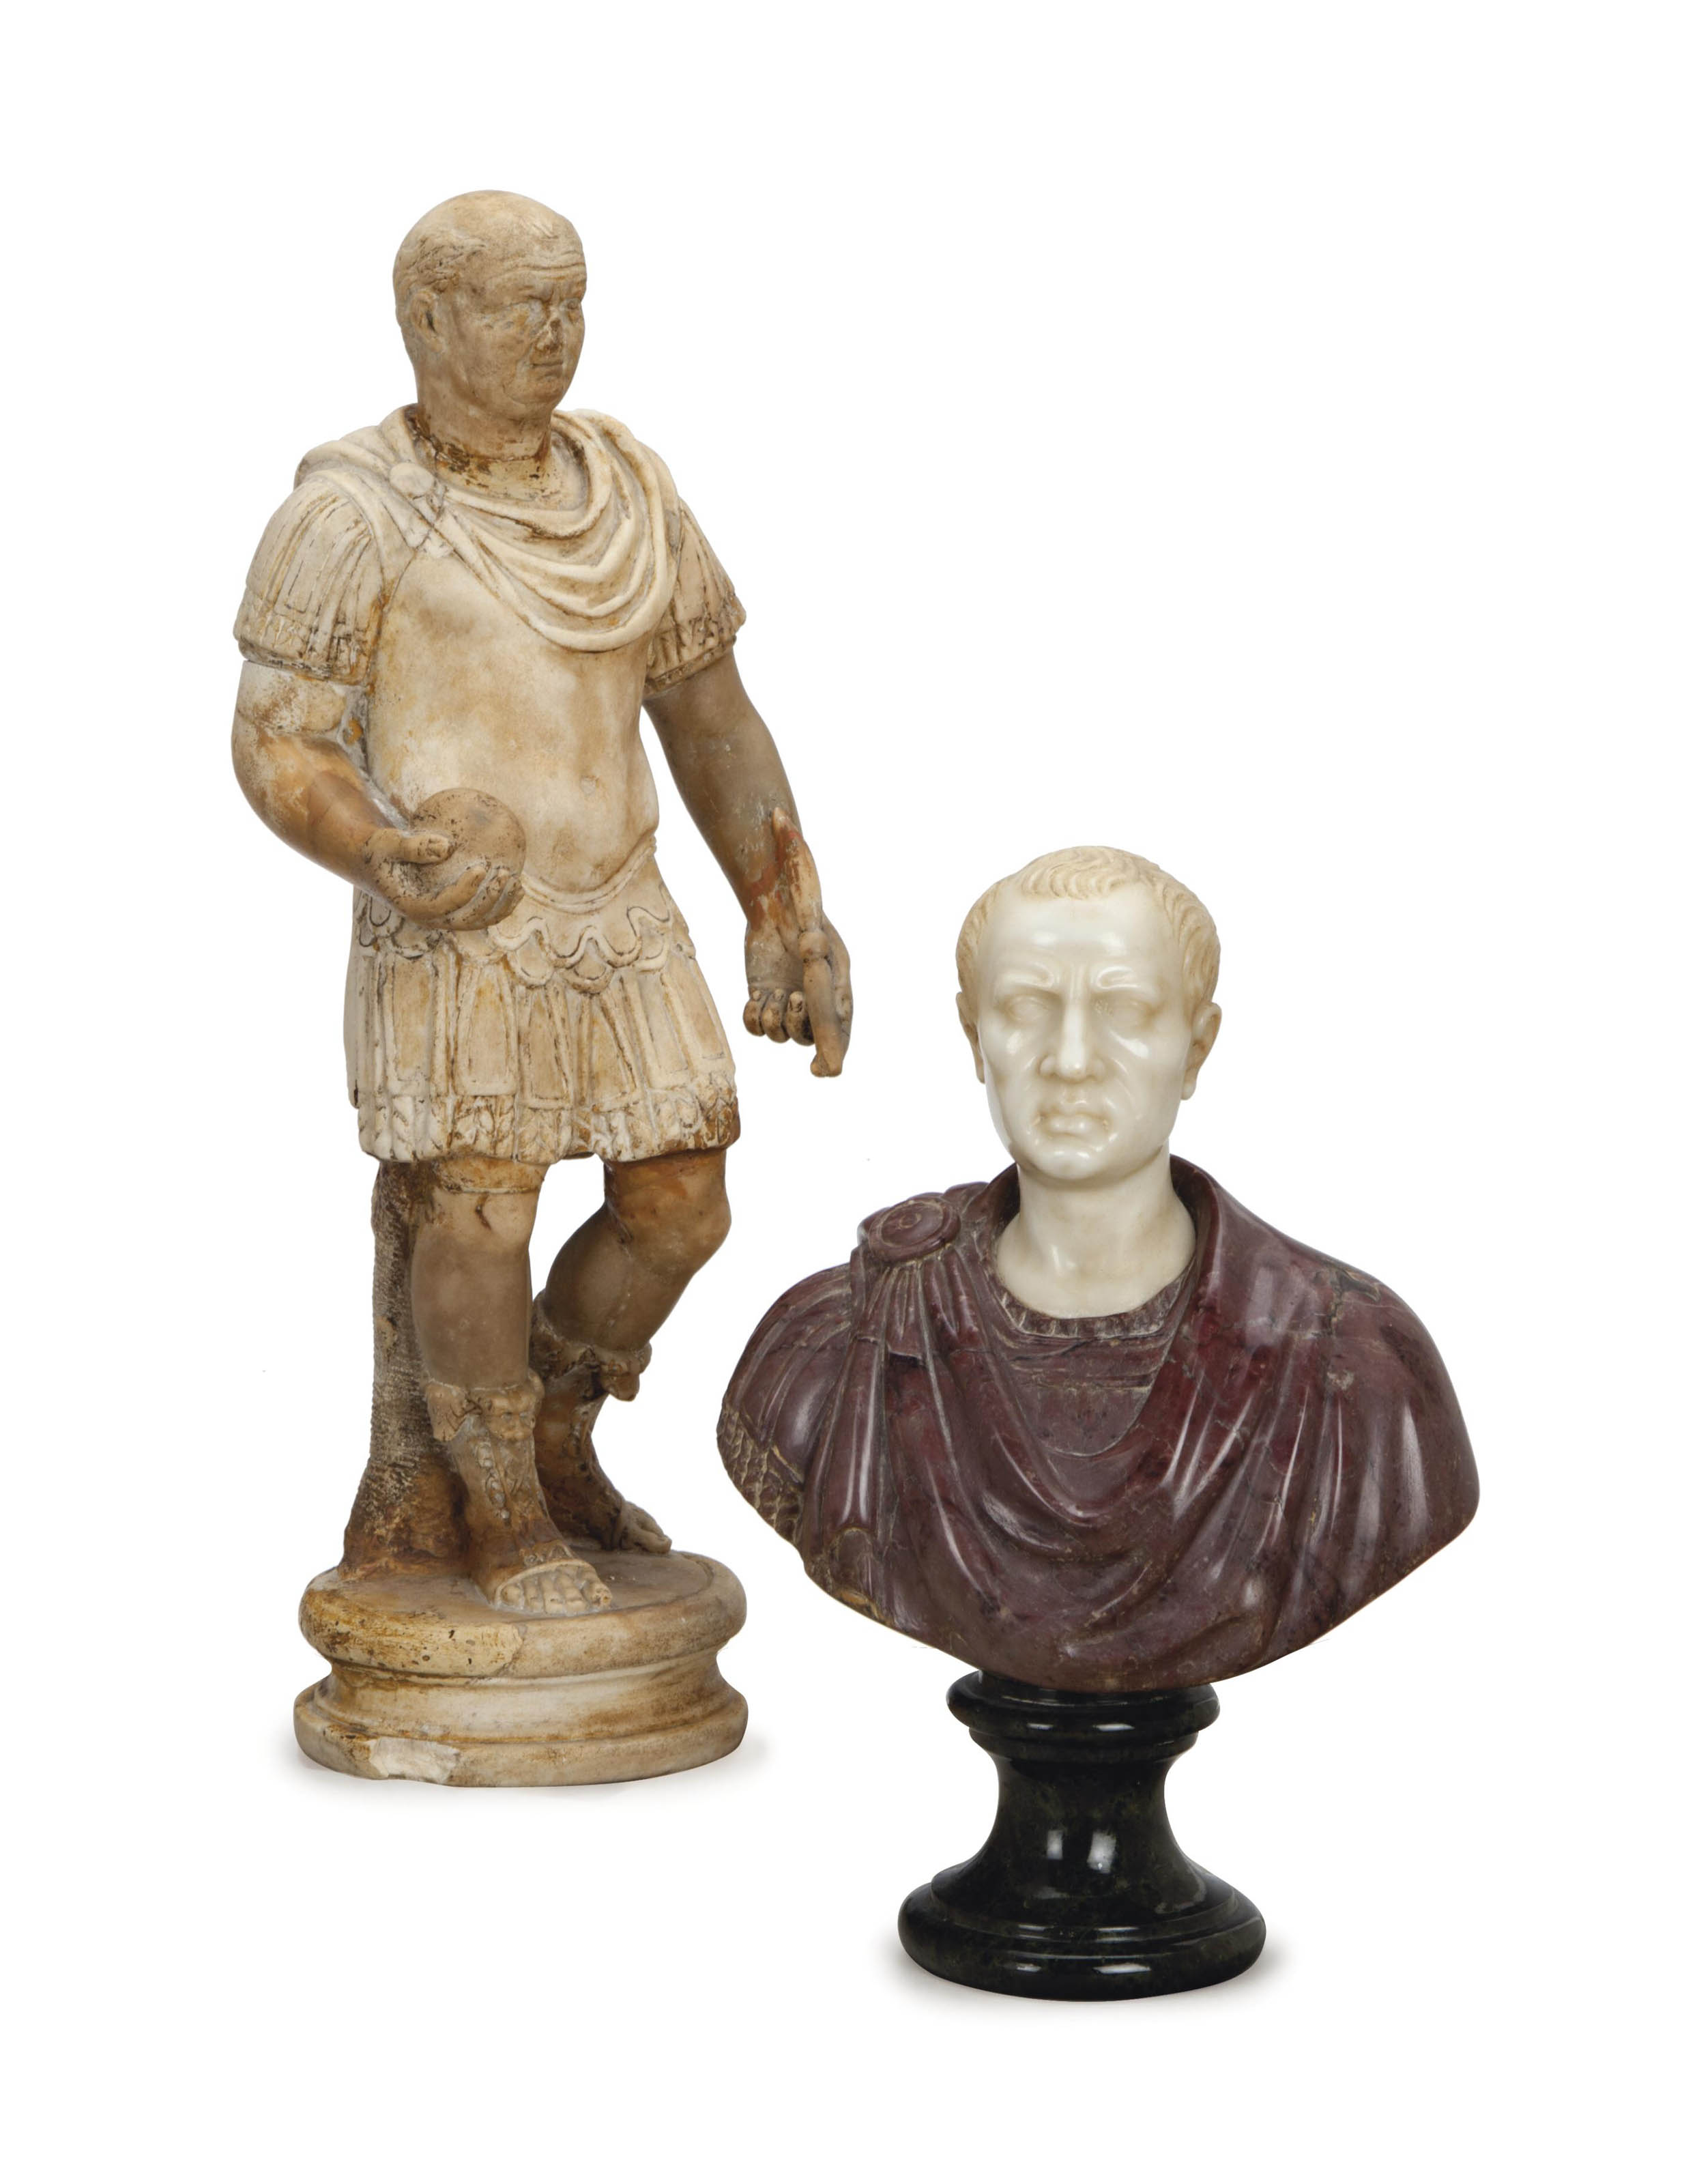 A MIXED MARBLE BUST OF A ROMAN